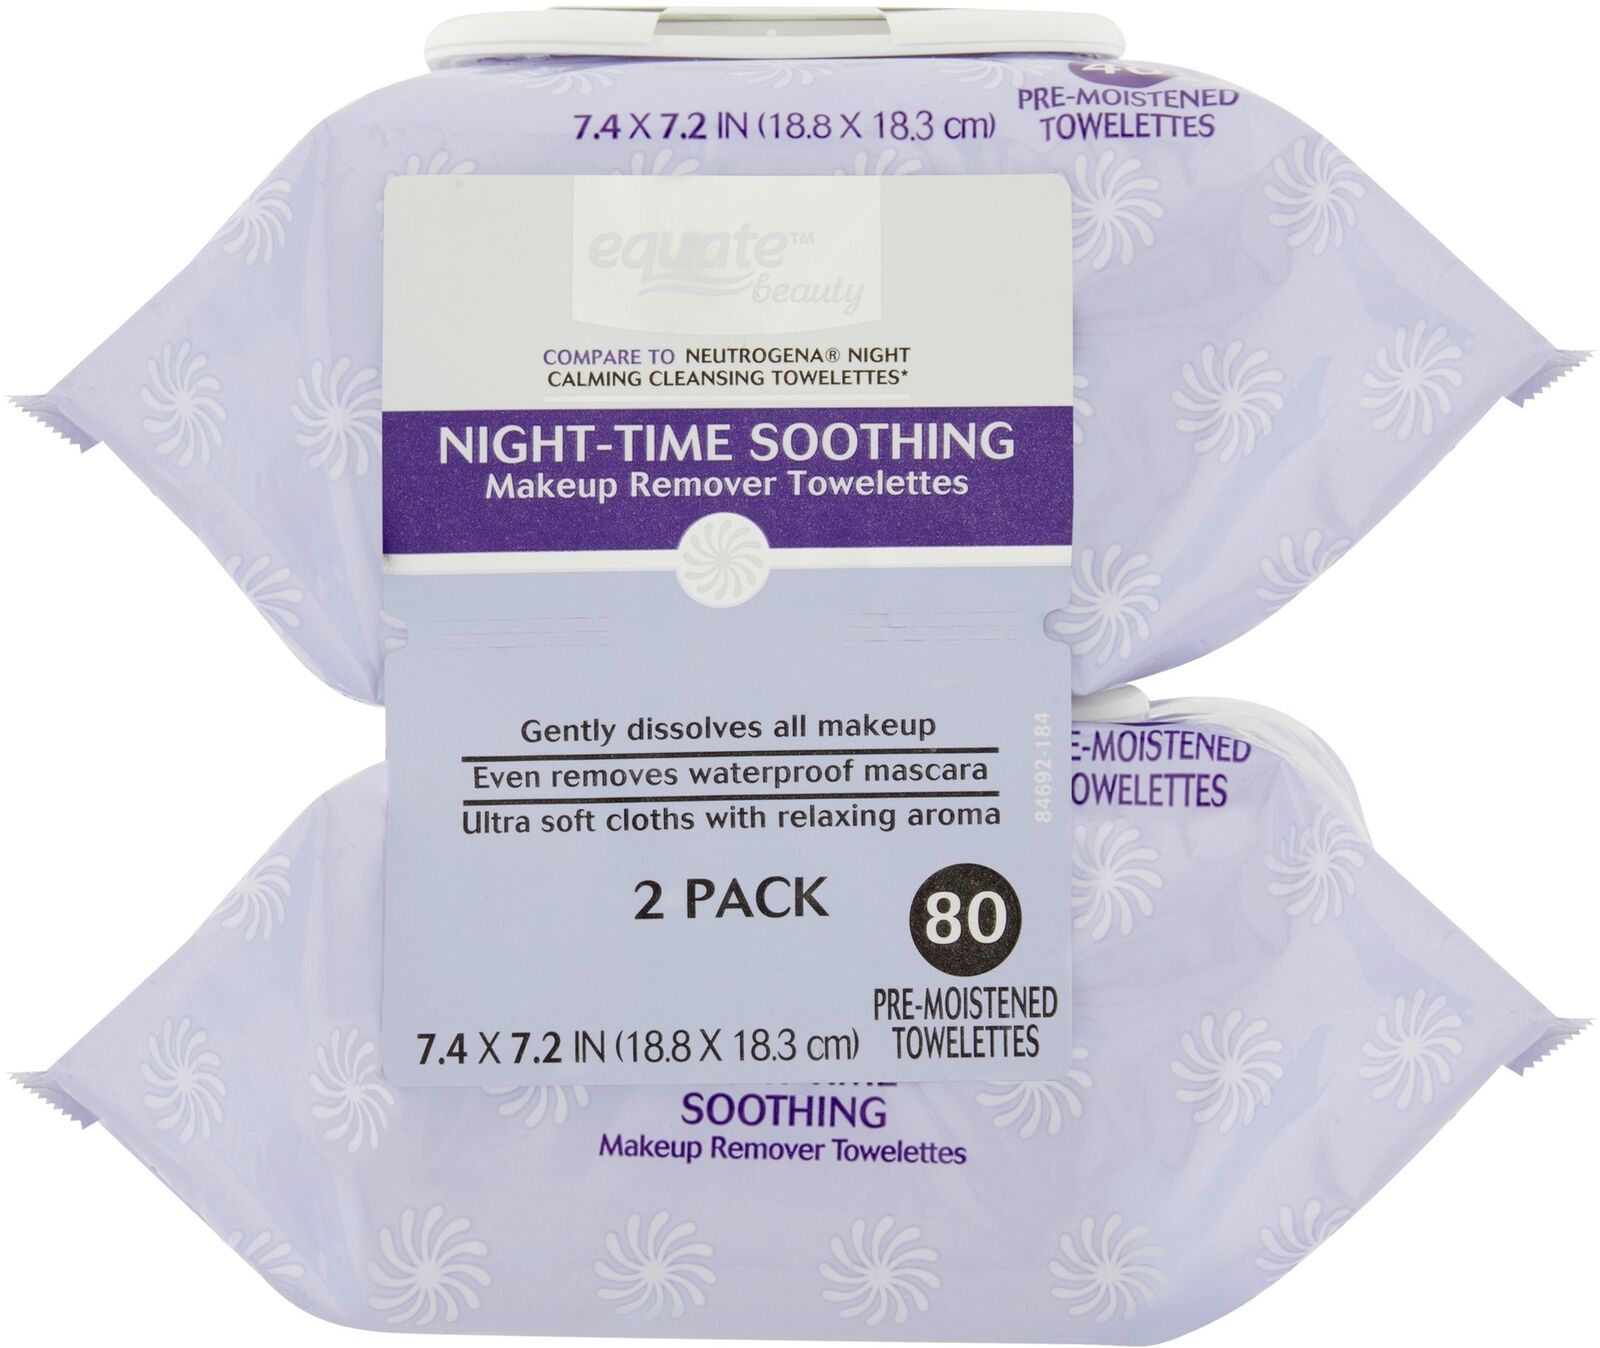 Equate Beauty Night Time Soothing Makeup Remover Towelettes 40 Biore Cleansing Oil 150ml Free In Sheet 2s Sample Norton Secured Powered By Verisign